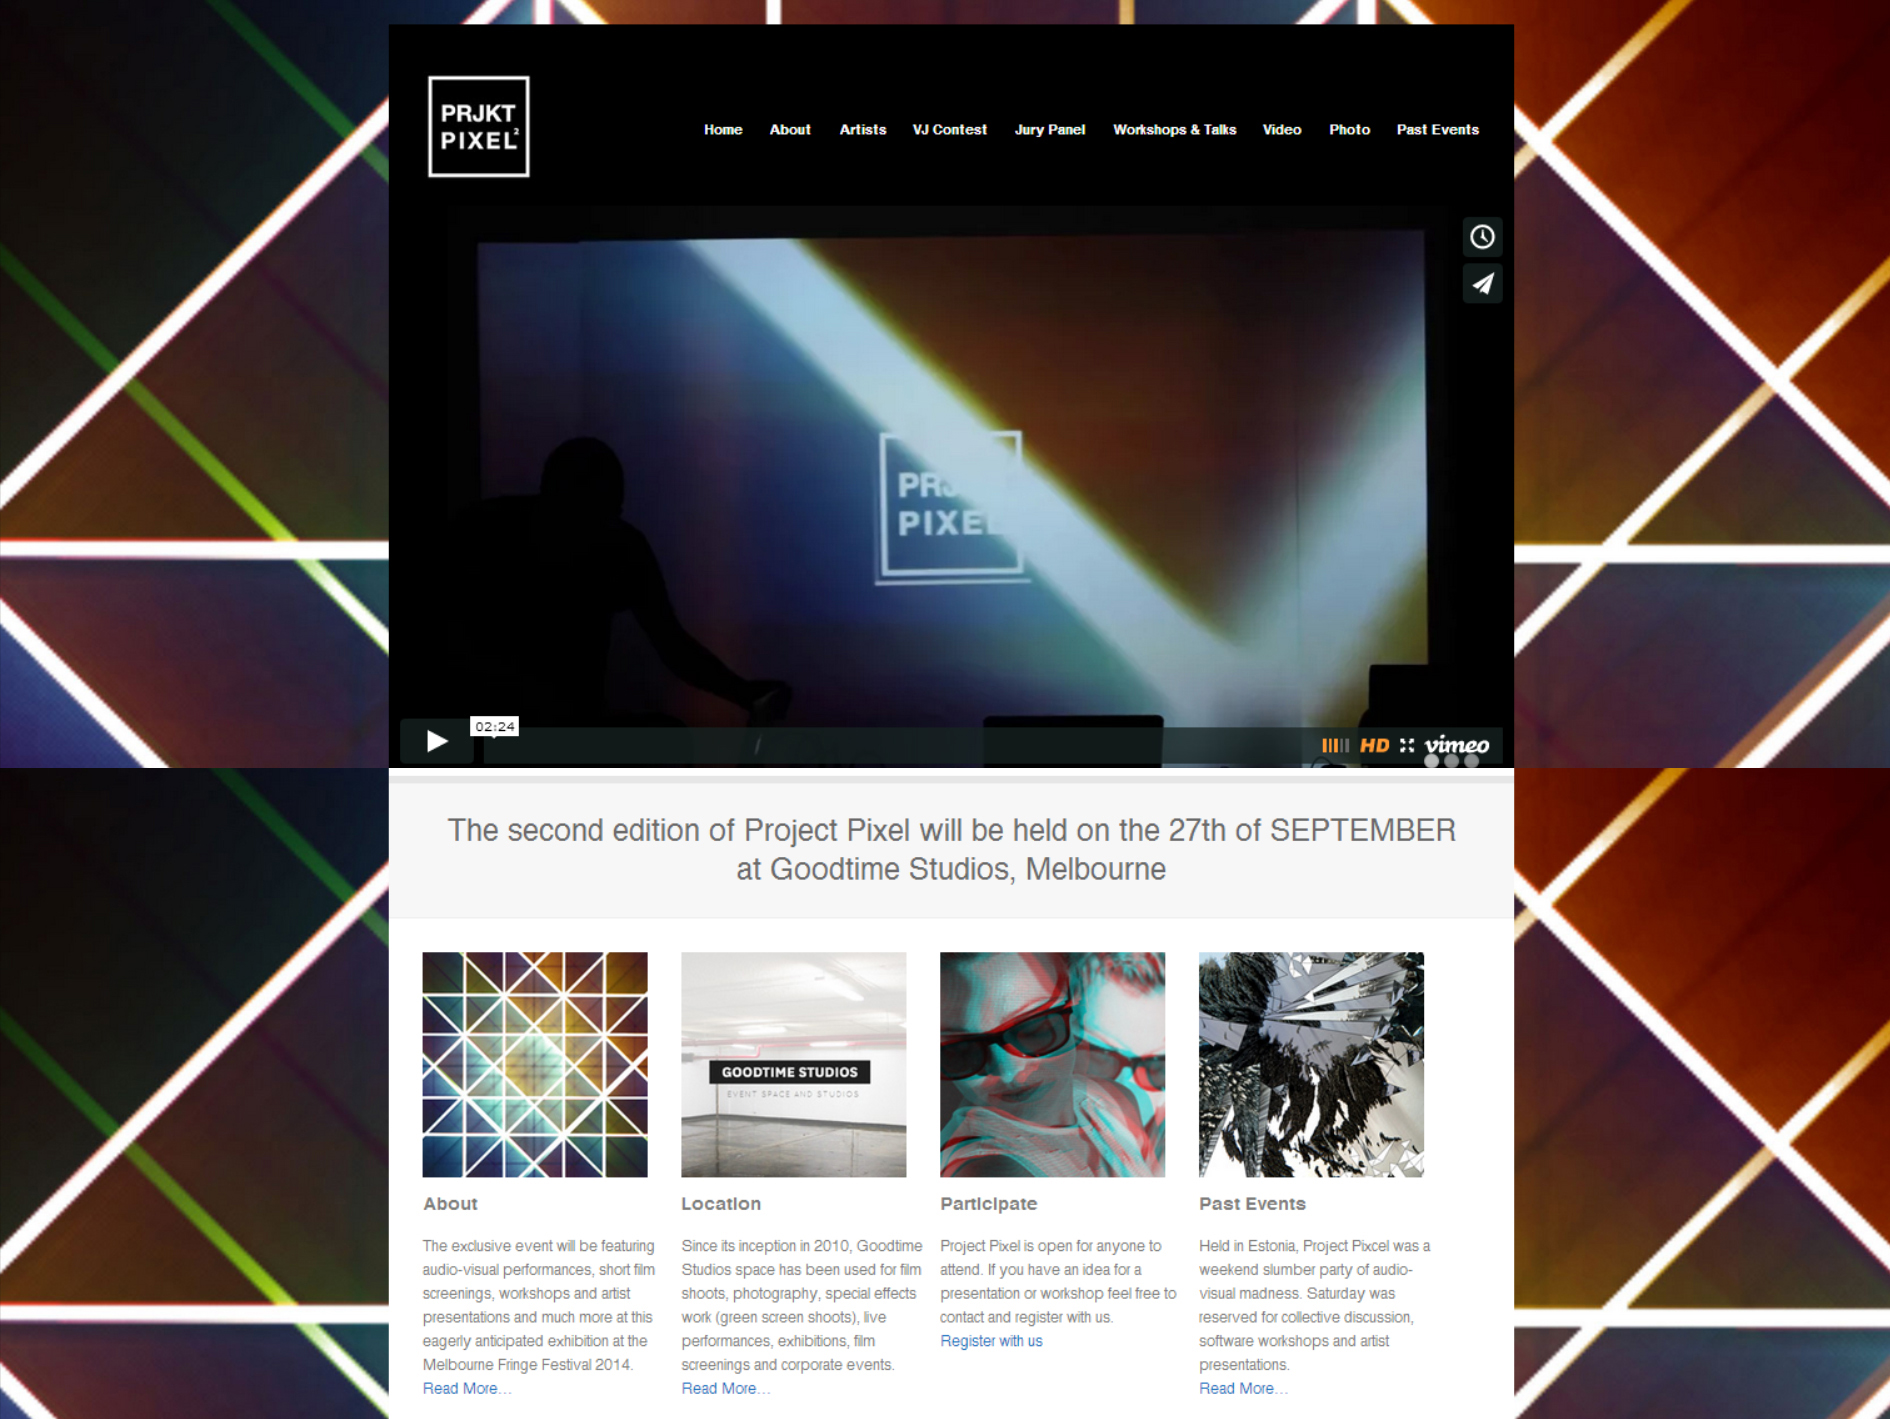 Project_Pixel_1_homepage1.2